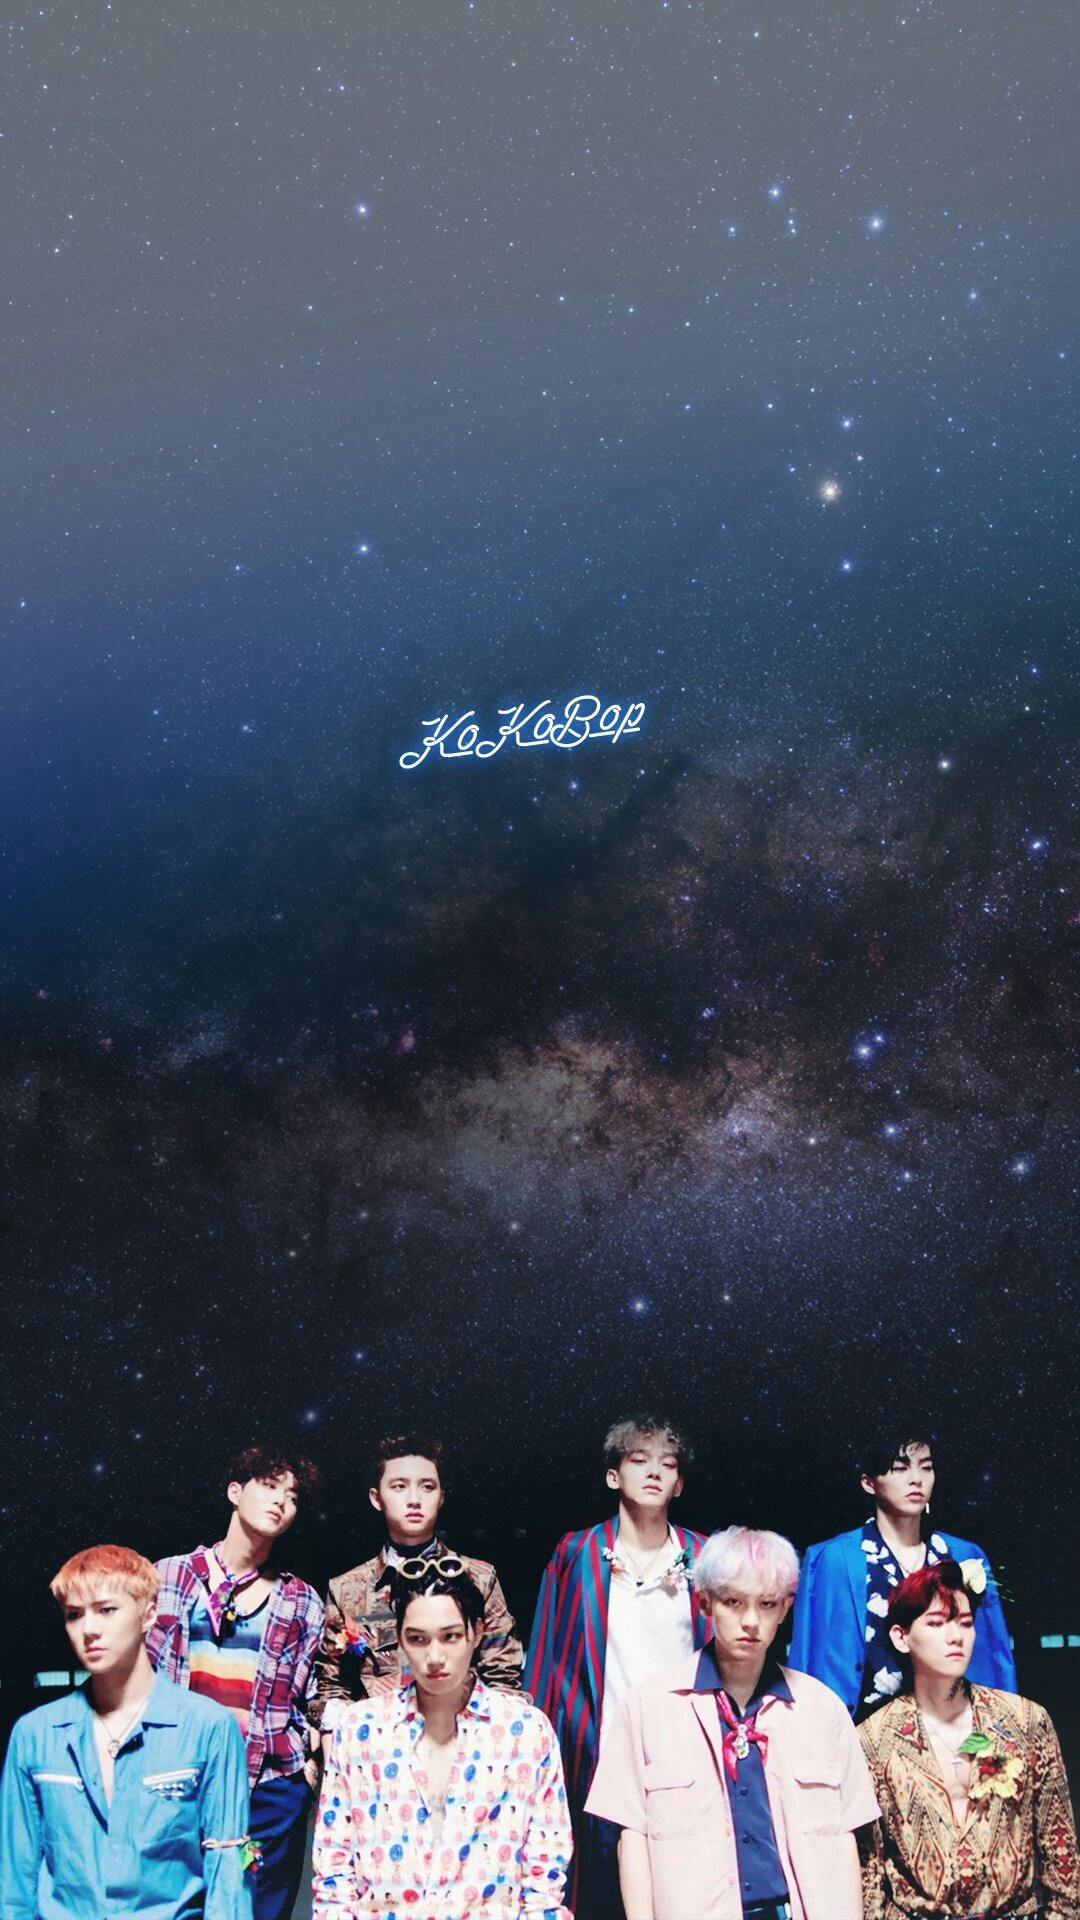 EXO COMEBACK 2017 WALLPAPER | #EXO #COMEBACK #July2017 | #엑소 #KoKoBop